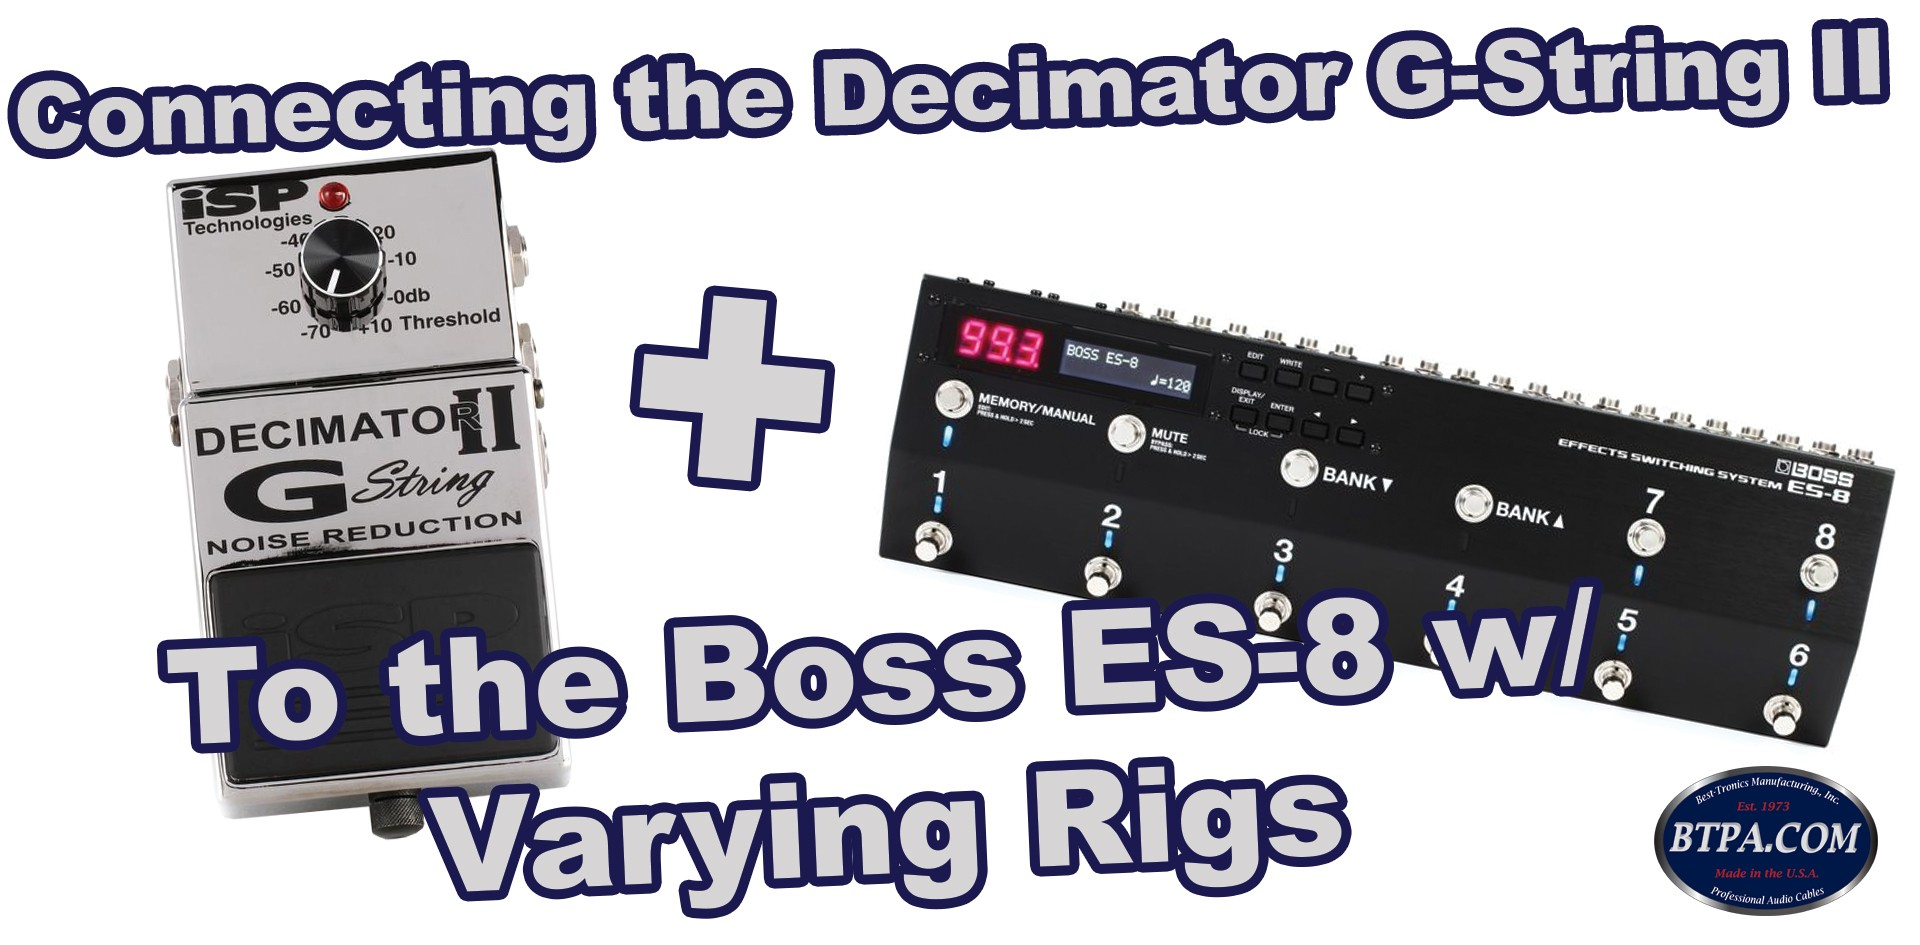 Using an ES-8 and Decimator G-String II